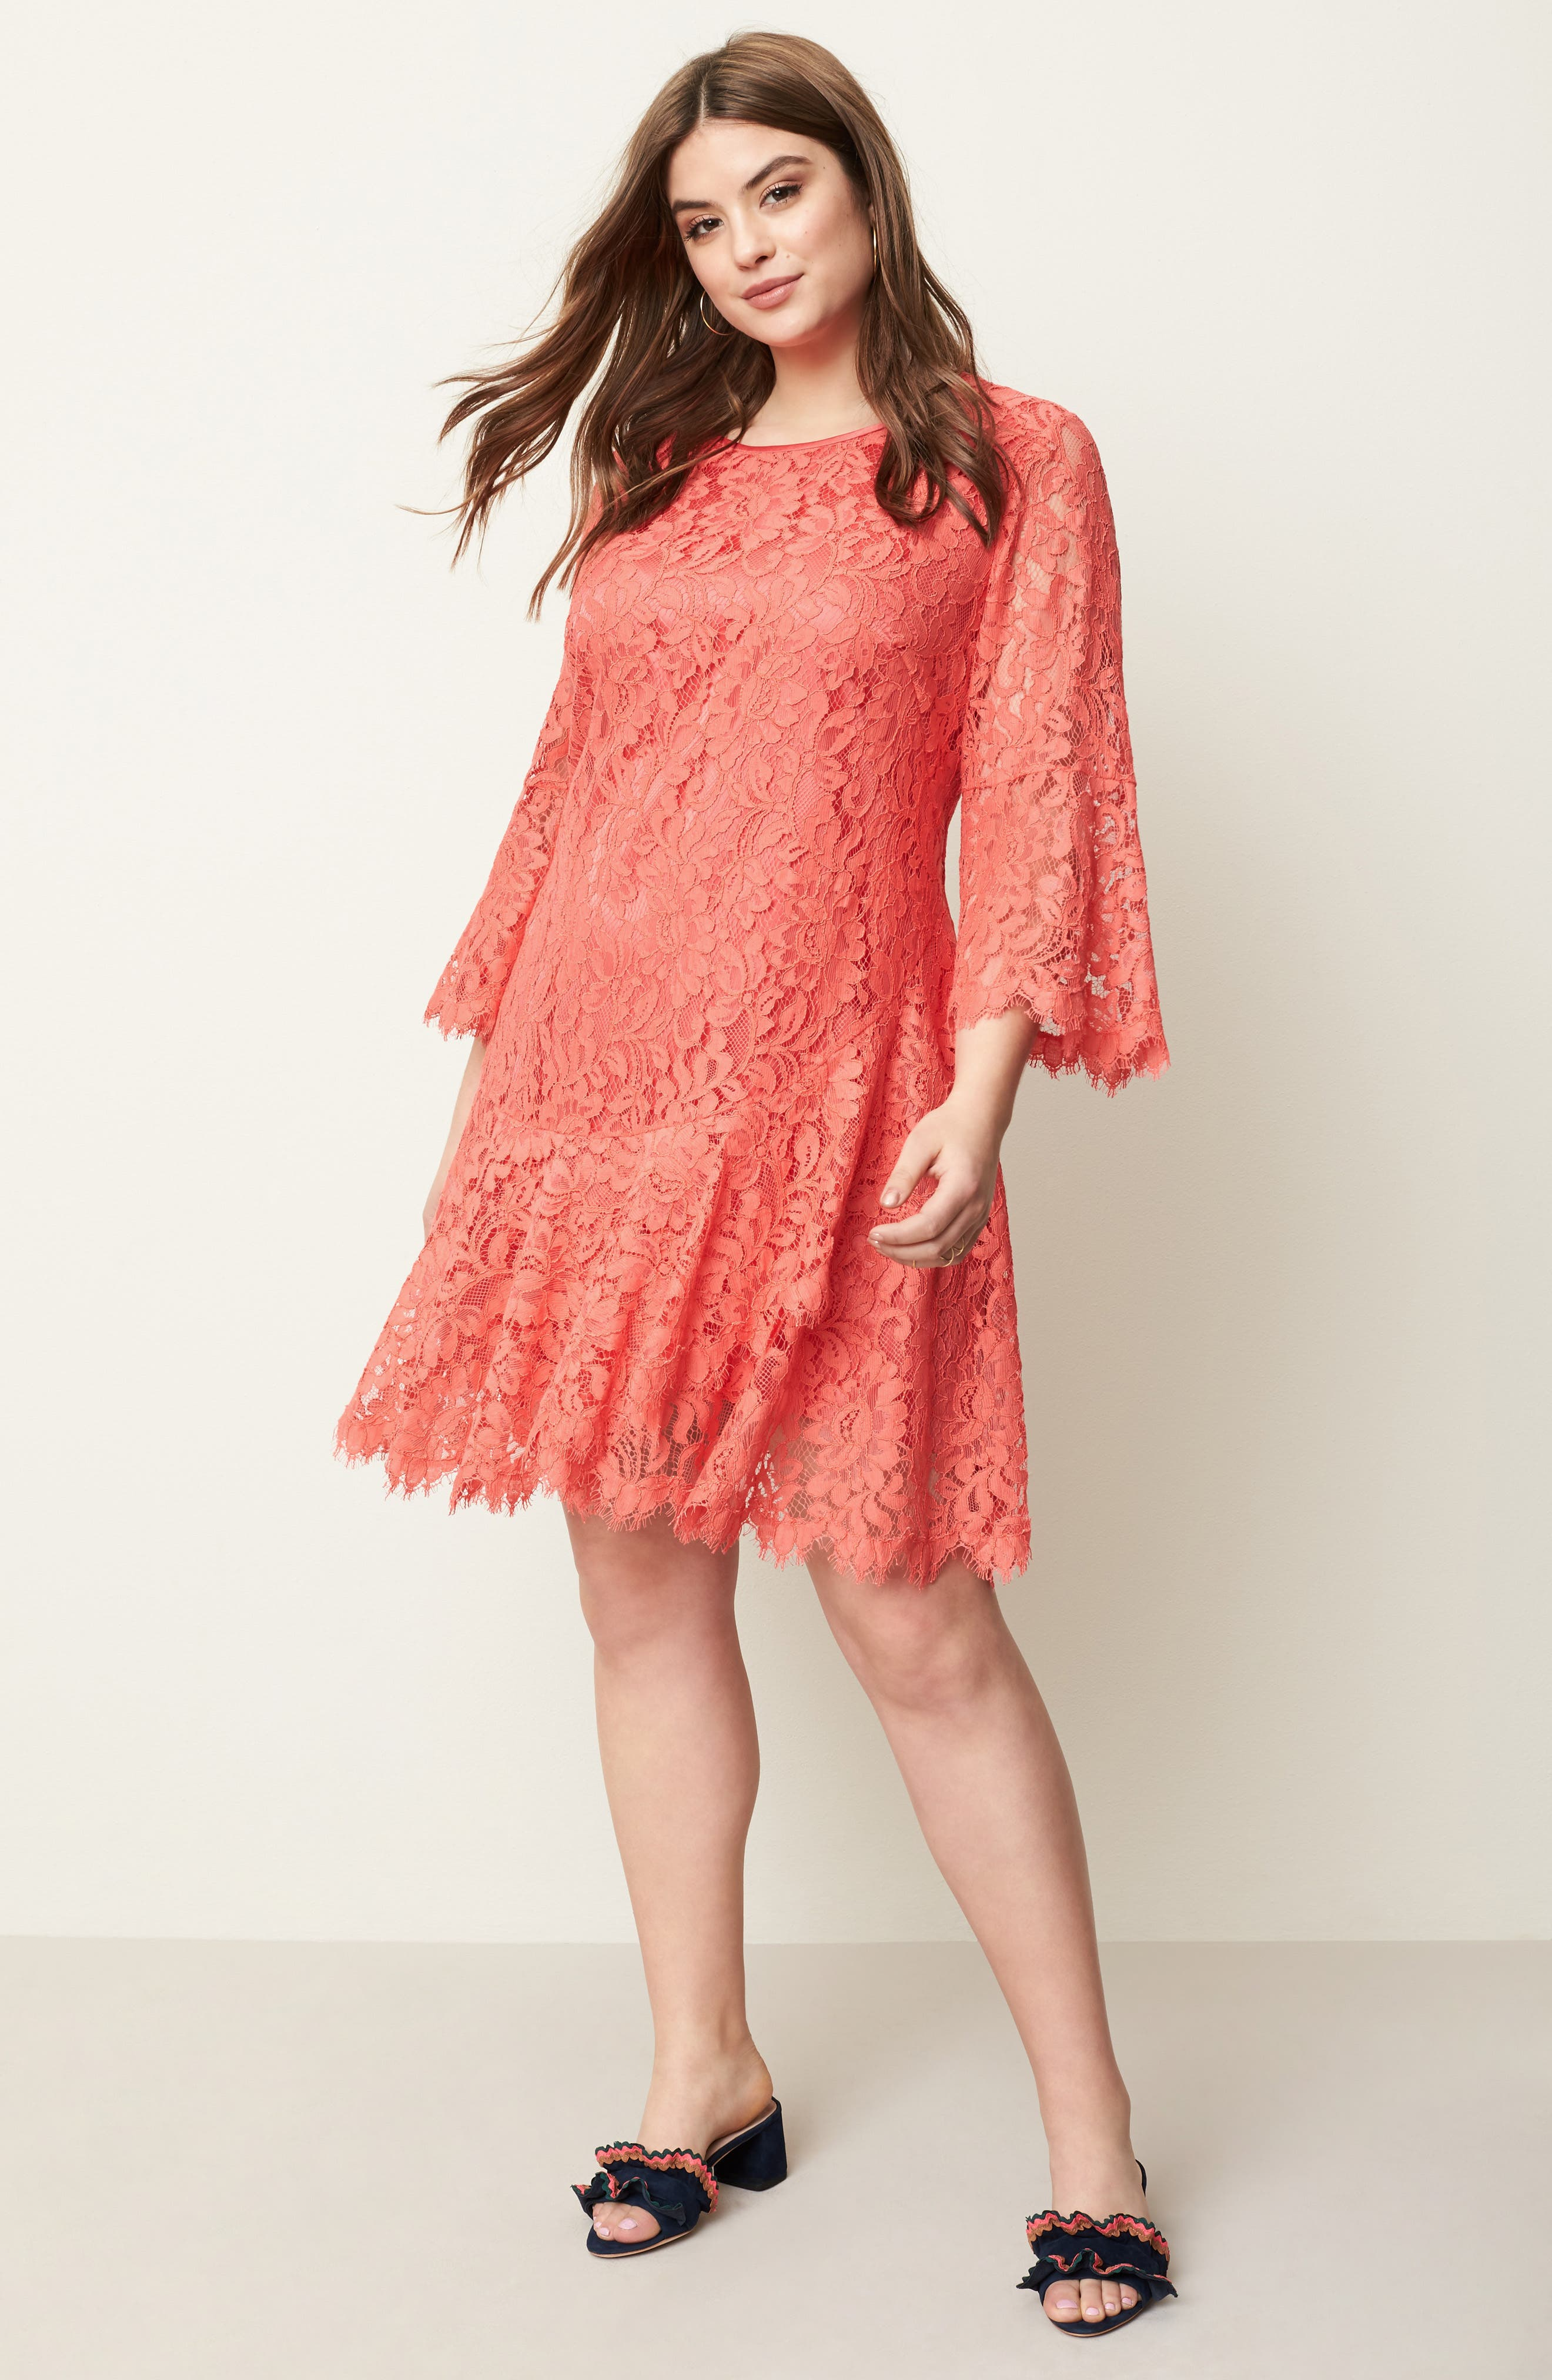 Bell Sleeve Lace Shift Dress,                             Alternate thumbnail 7, color,                             Coral